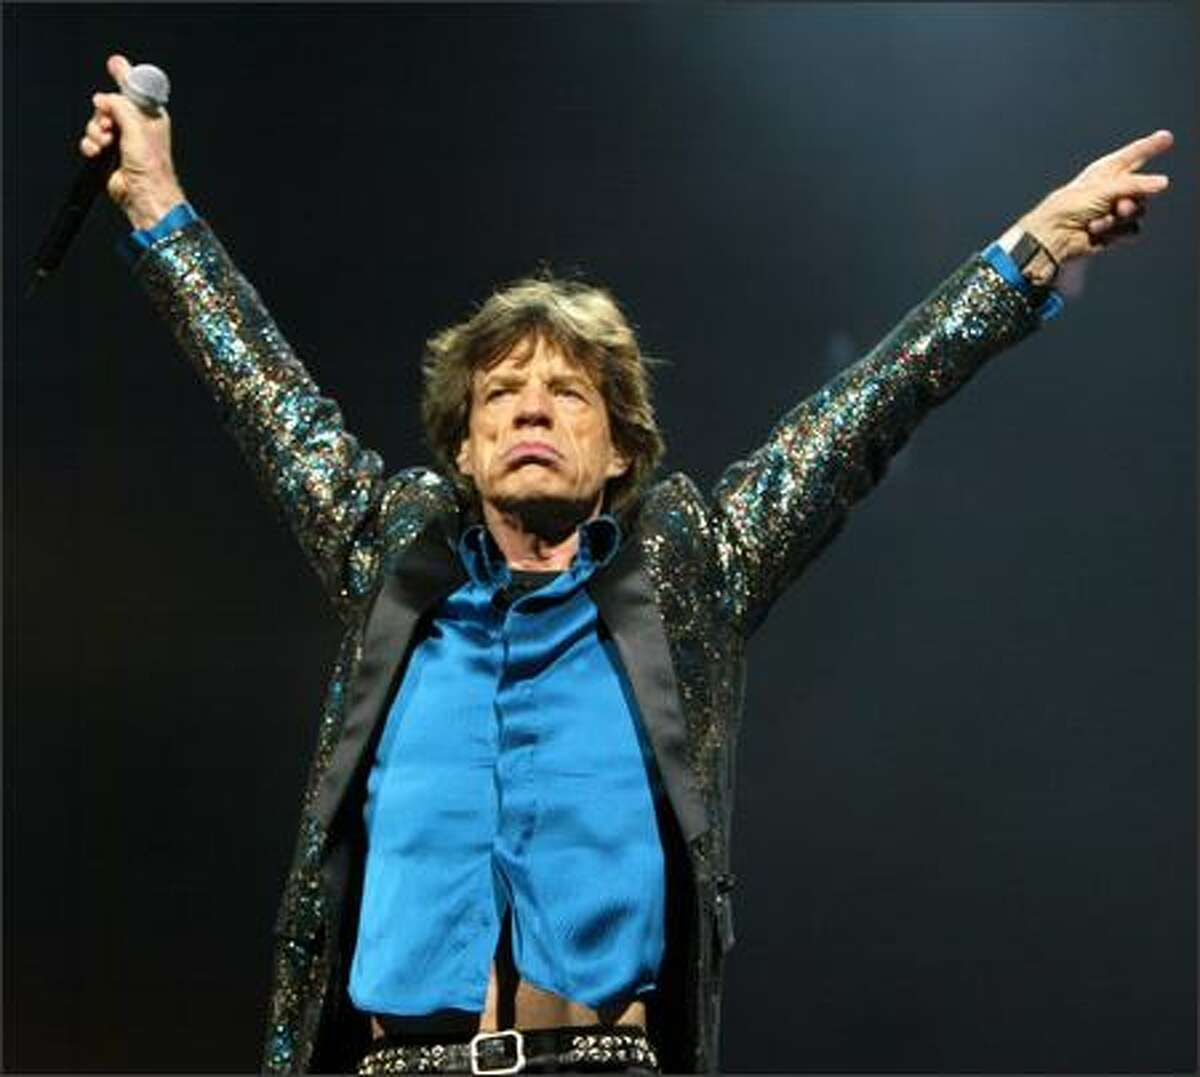 Mick Jagger showed that he still knew how to captivate an audience during the Rolling Stones' KeyArena show.